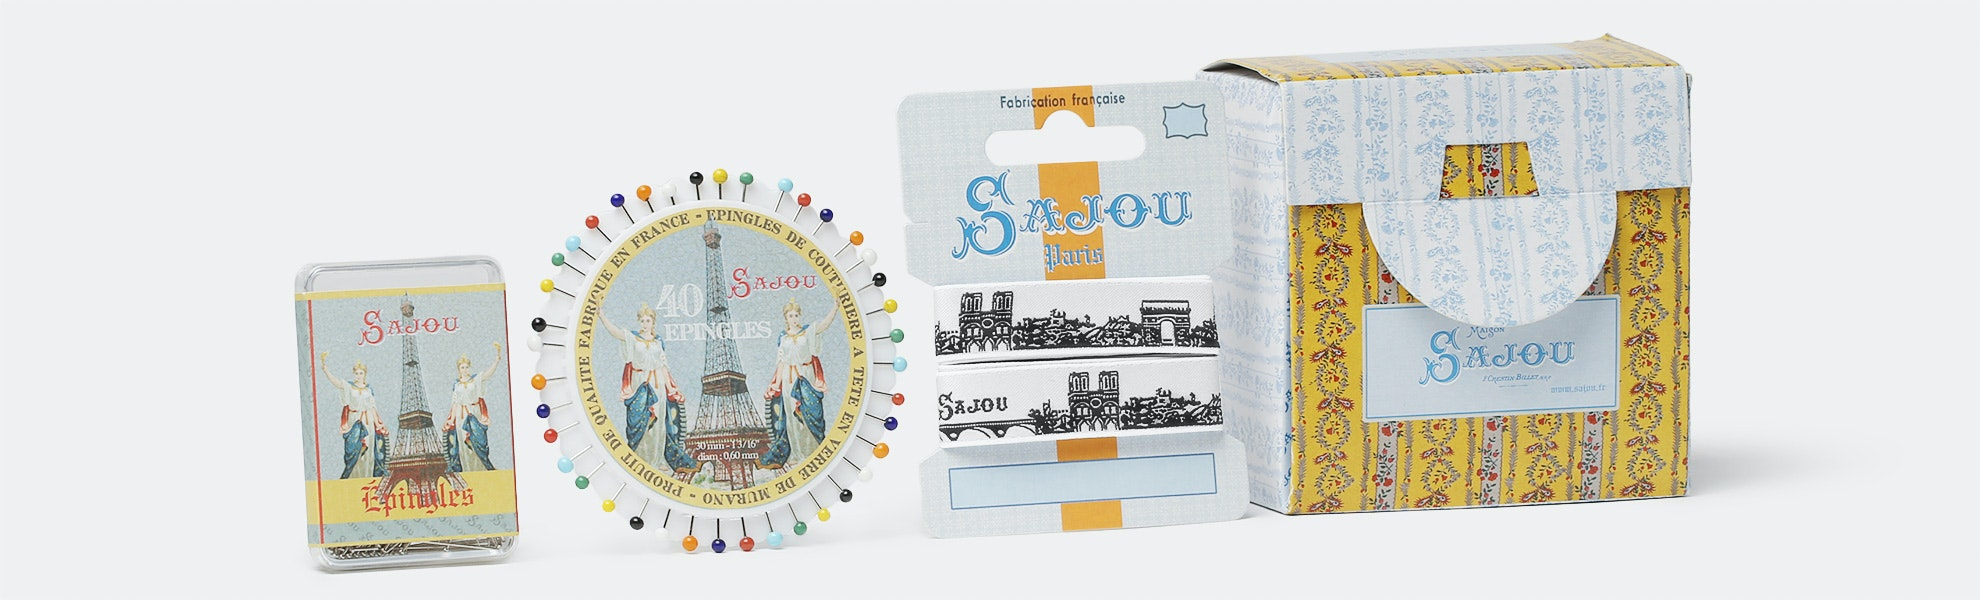 Sewing Pins by Maison Sajou